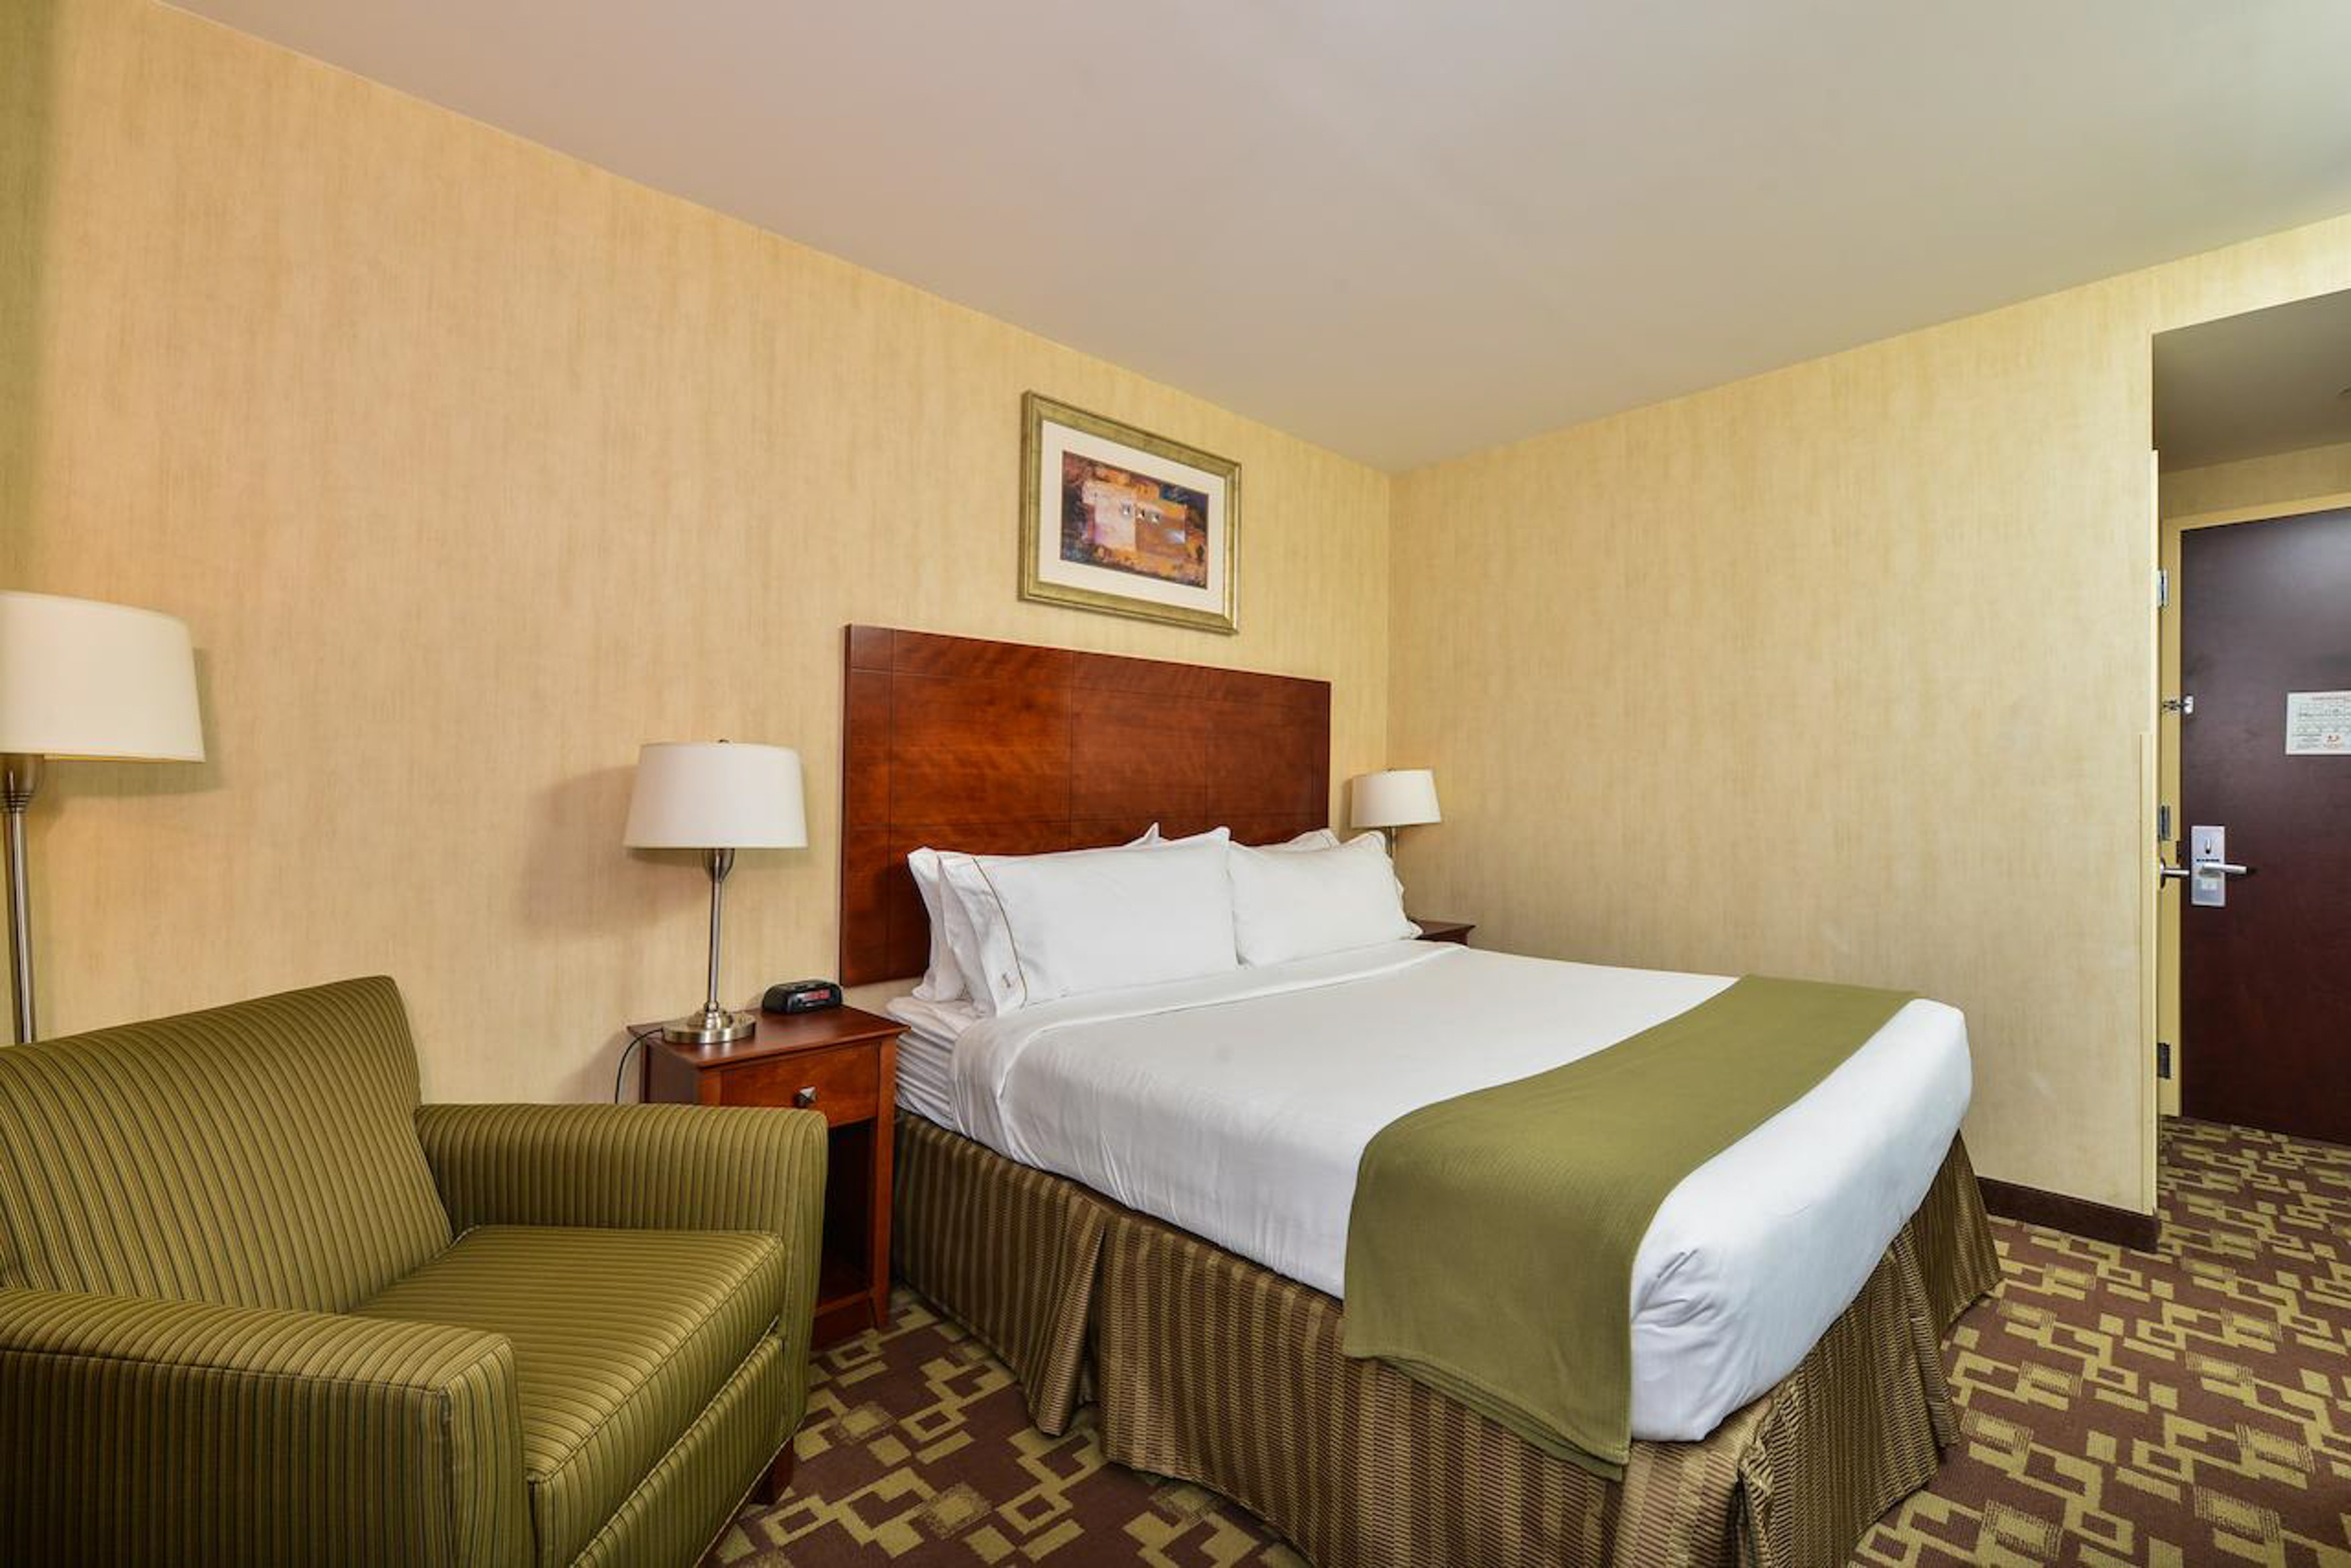 © Holiday Inn Express Staten Island West / Booking.com